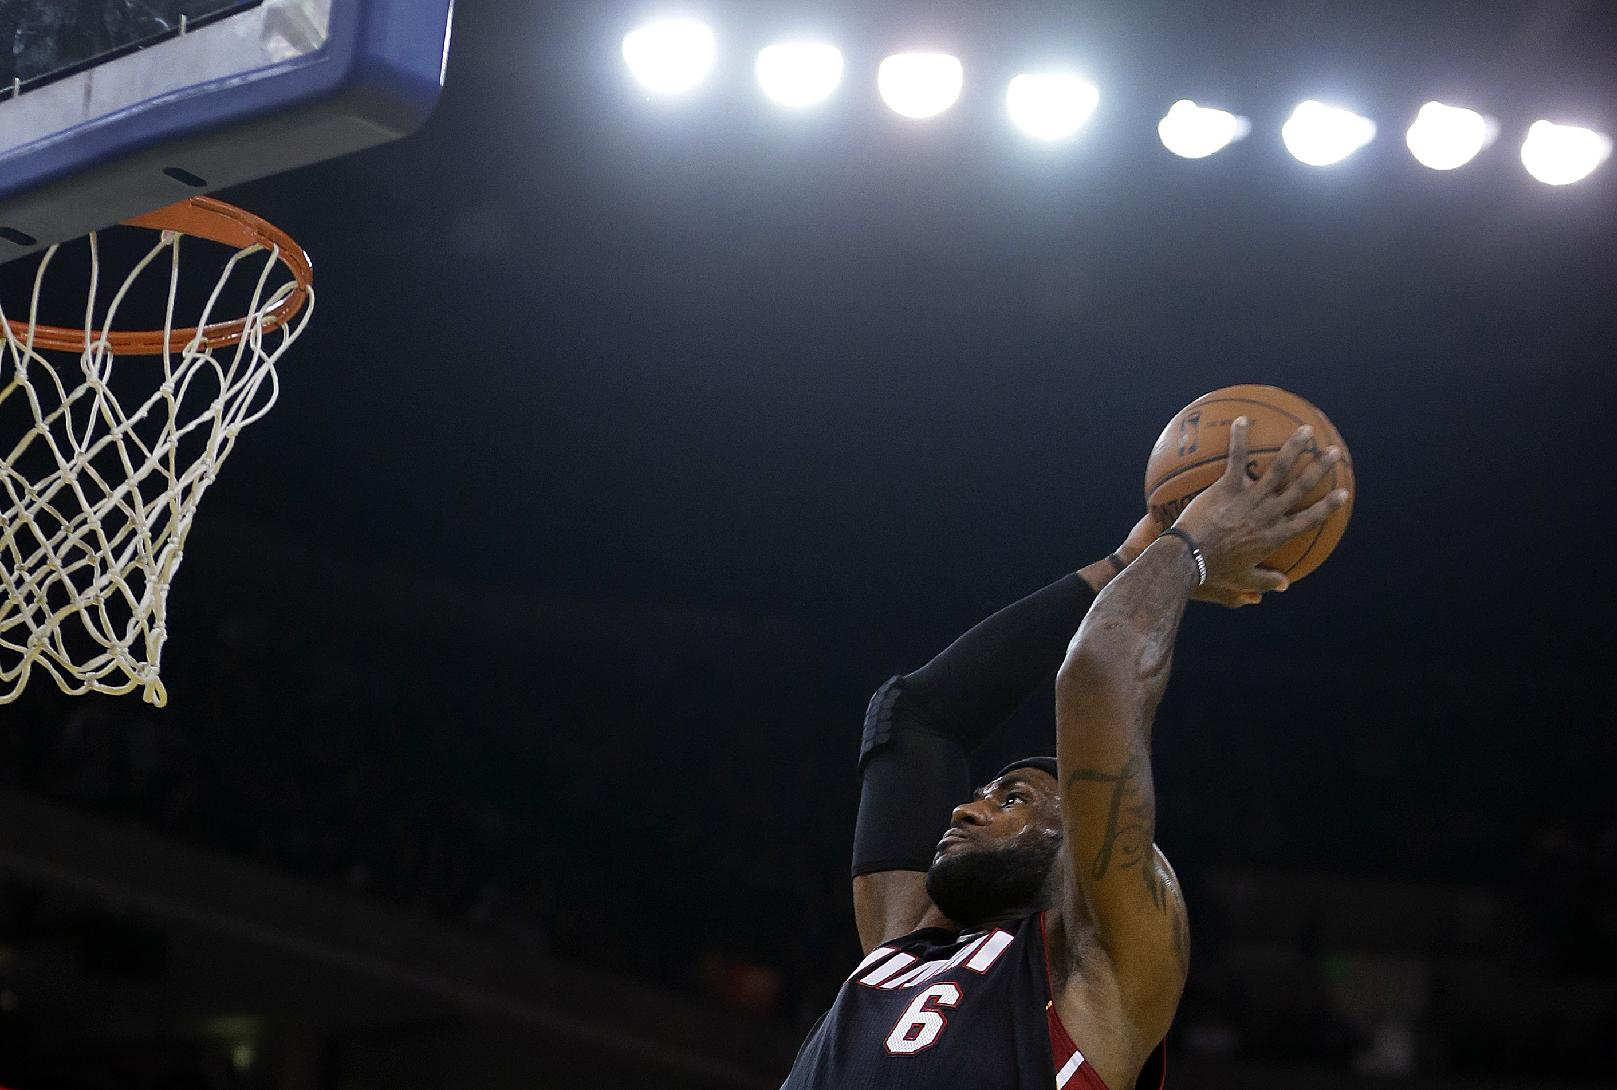 Miami Heat's LeBron James lays up a shot against the Golden State Warriors during the first half of an NBA basketball game on Wednesday, Feb. 12, 2014, in Oakland, Calif